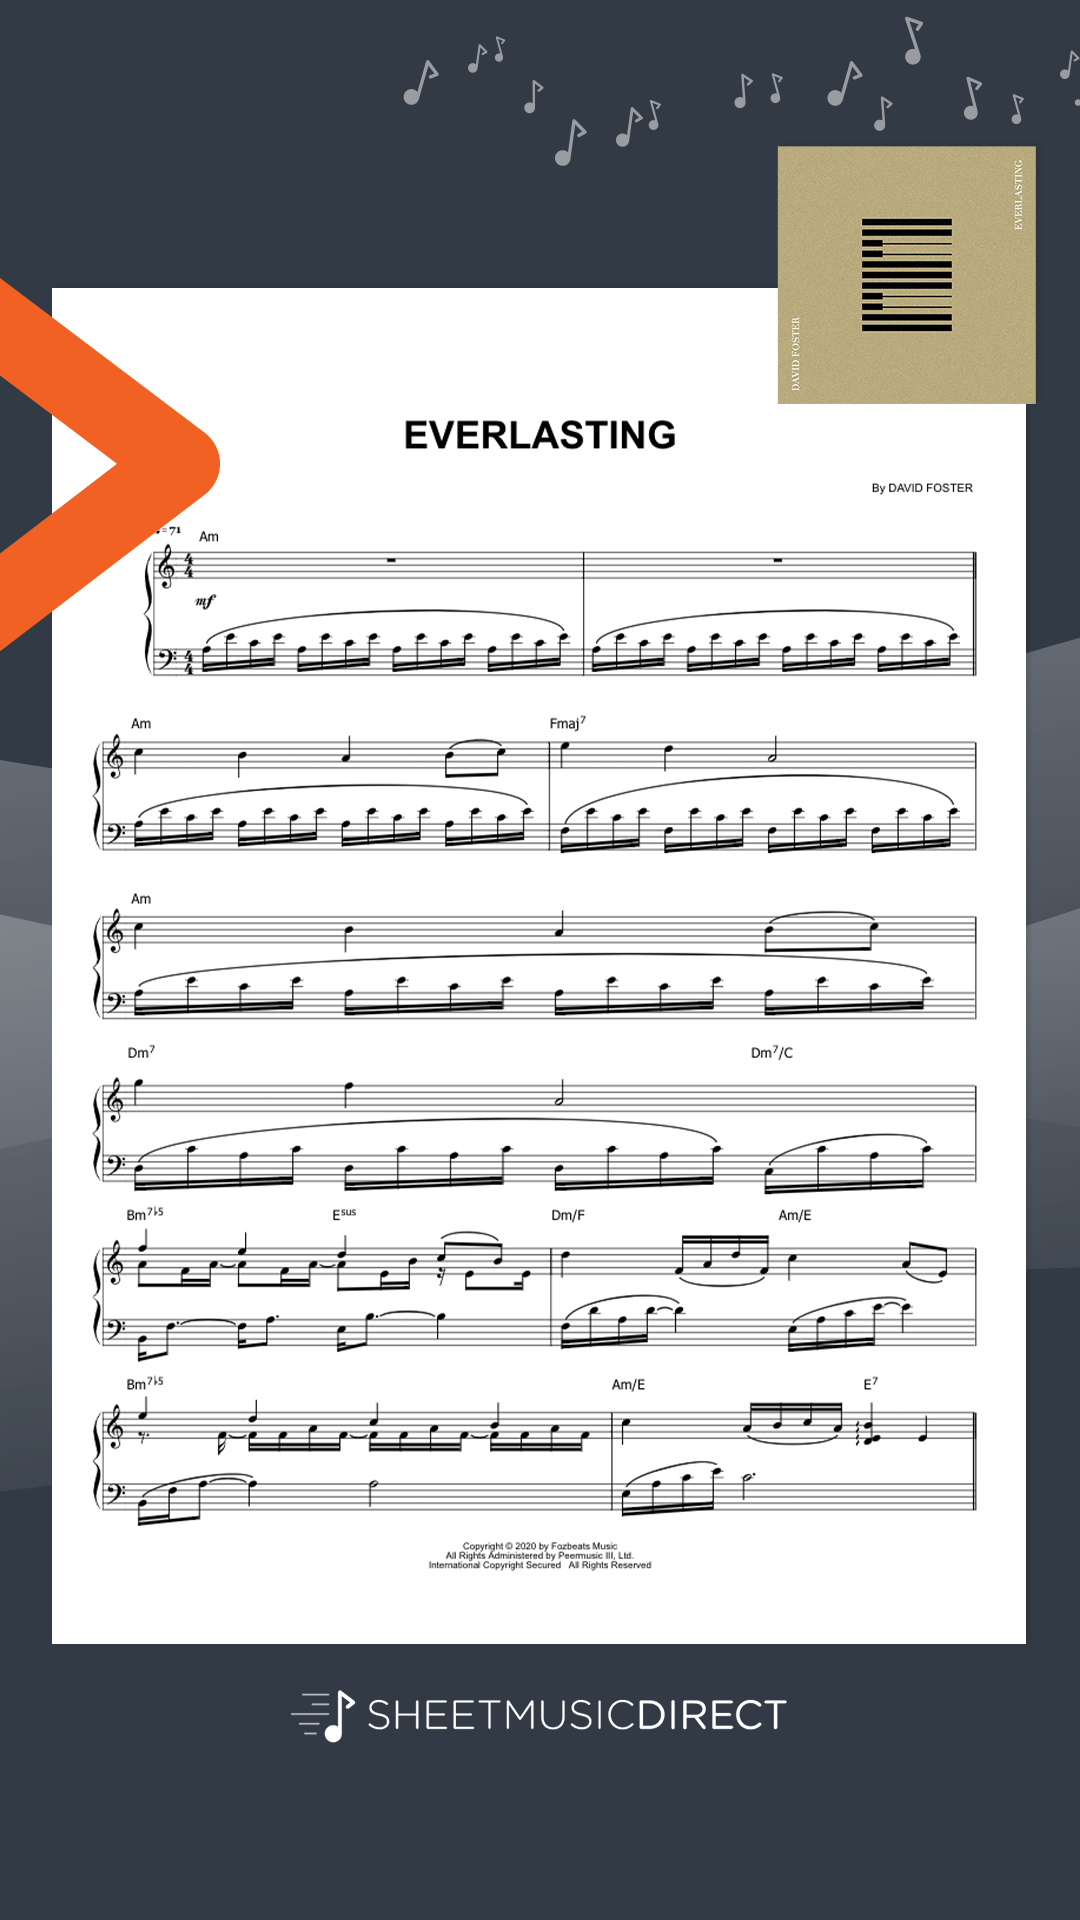 Download Official Everlasting Sheet Music By David Foster Arranged For Piano Solo In 2020 Sheet Music Digital Sheet Music Sheet Music Direct